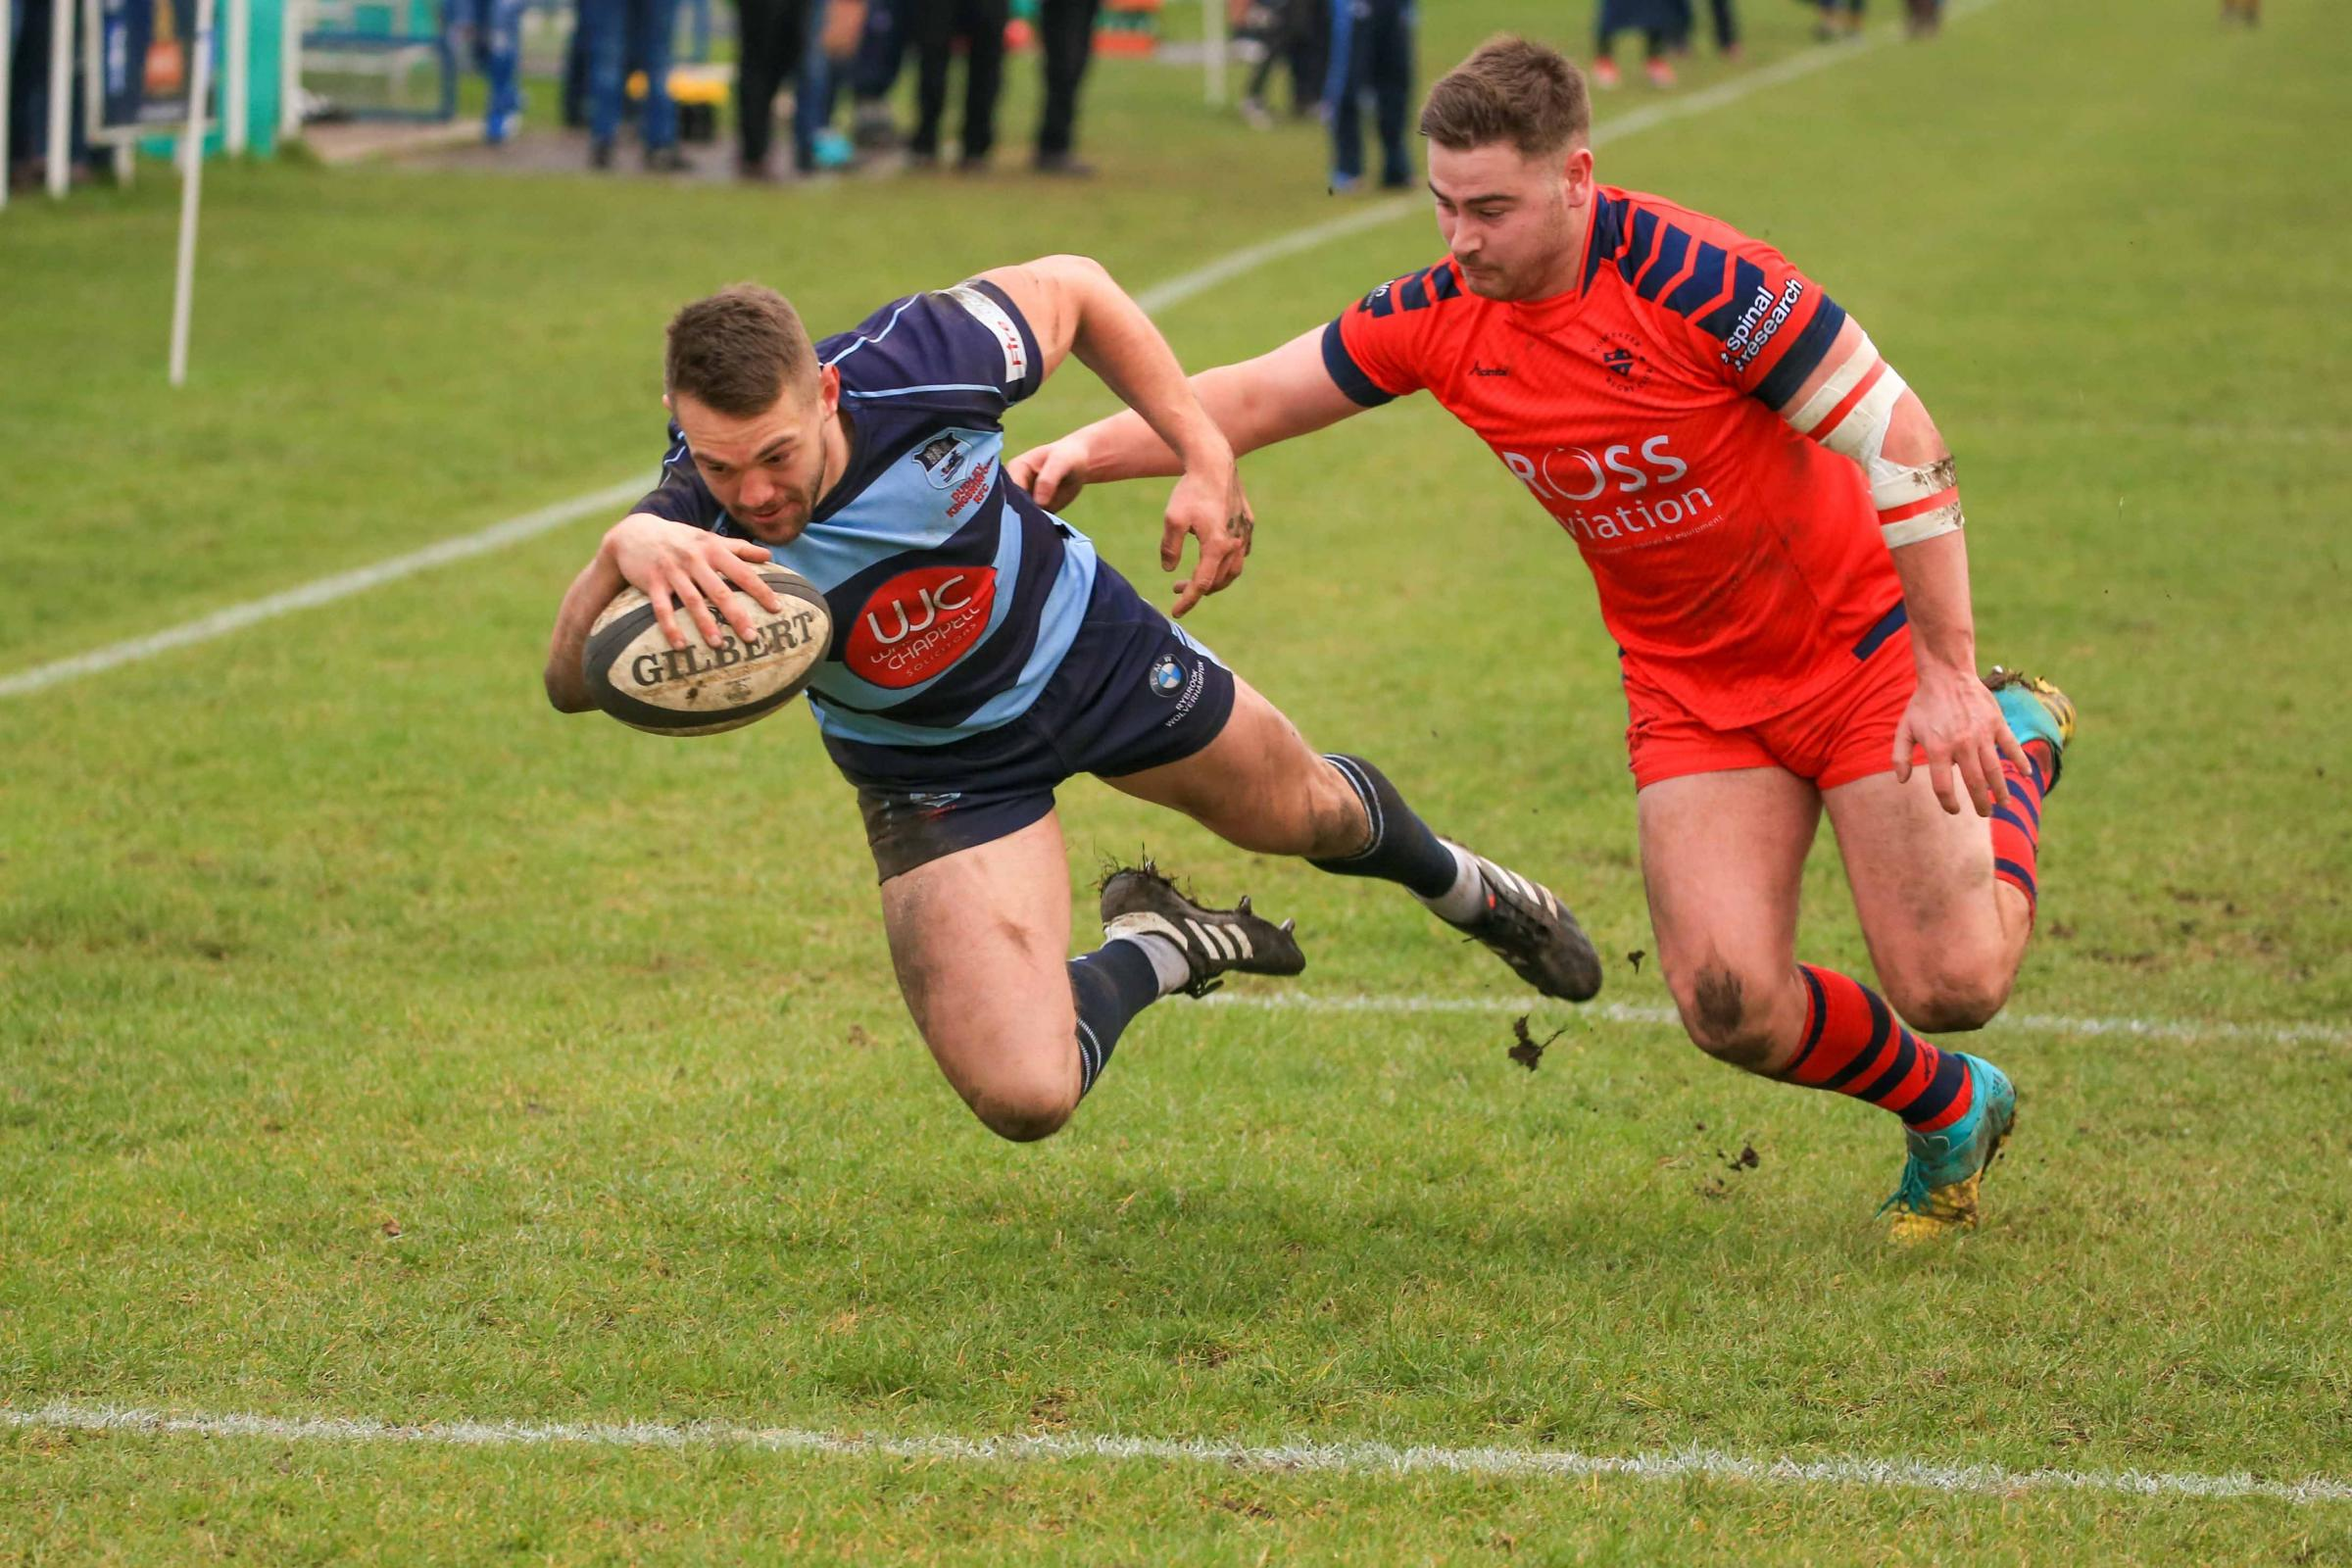 Stefan Shillingford scores for DK. Photo: Ian Jackson